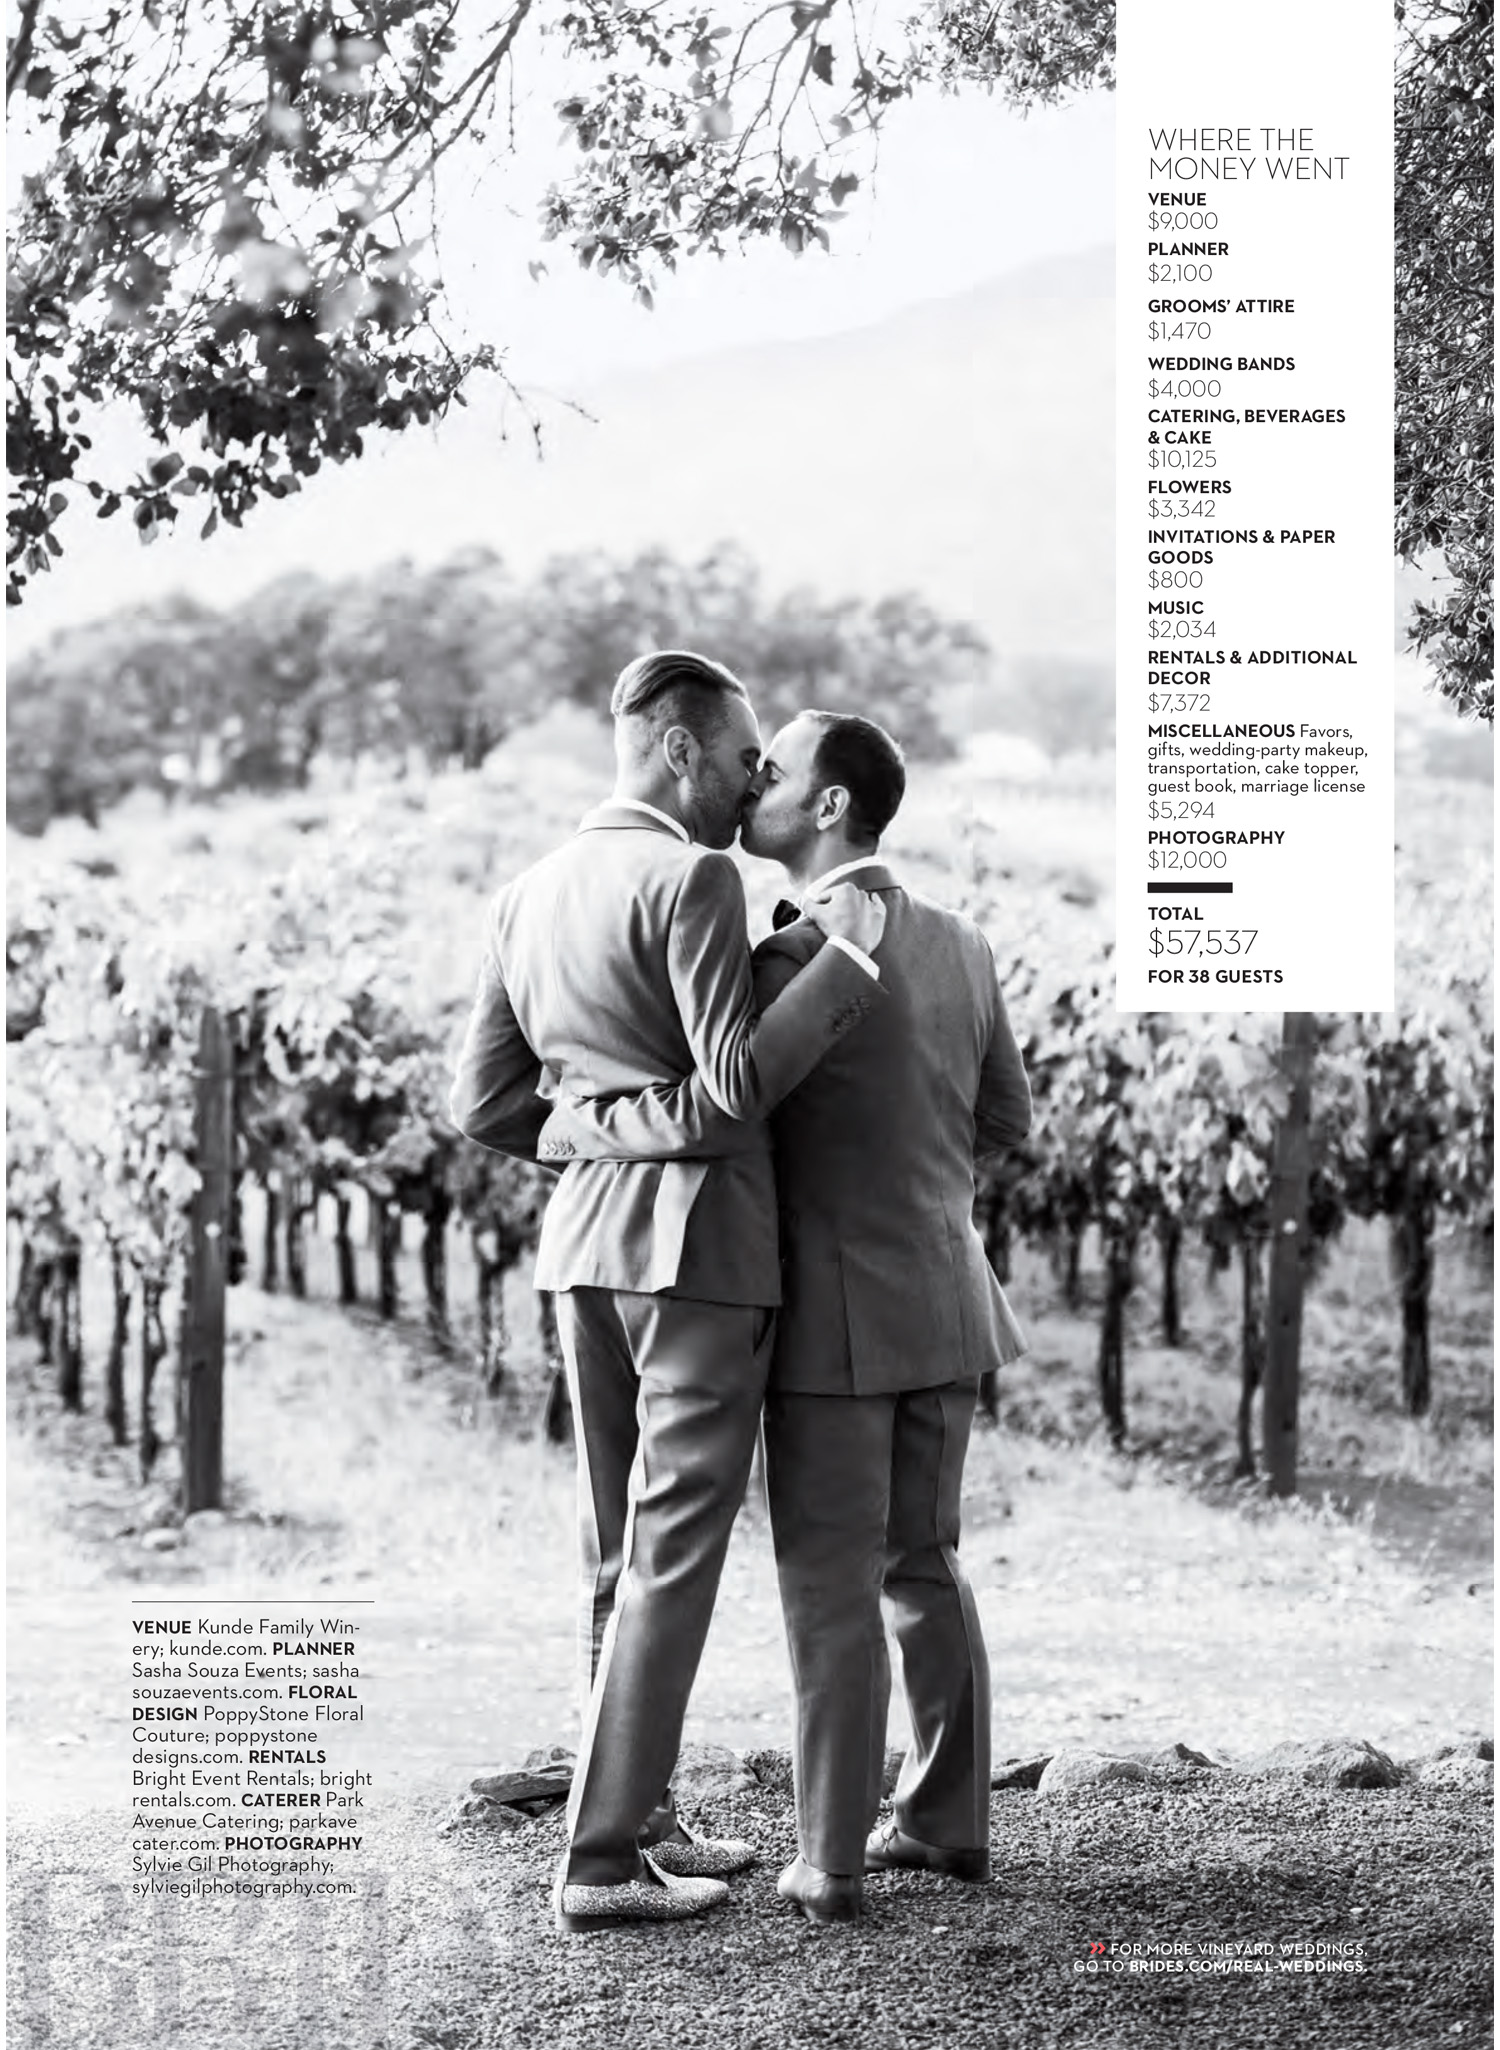 Sylvie-Gil-film-destination-wedding-photography-kunde-winery-same-sex-brides-magazine